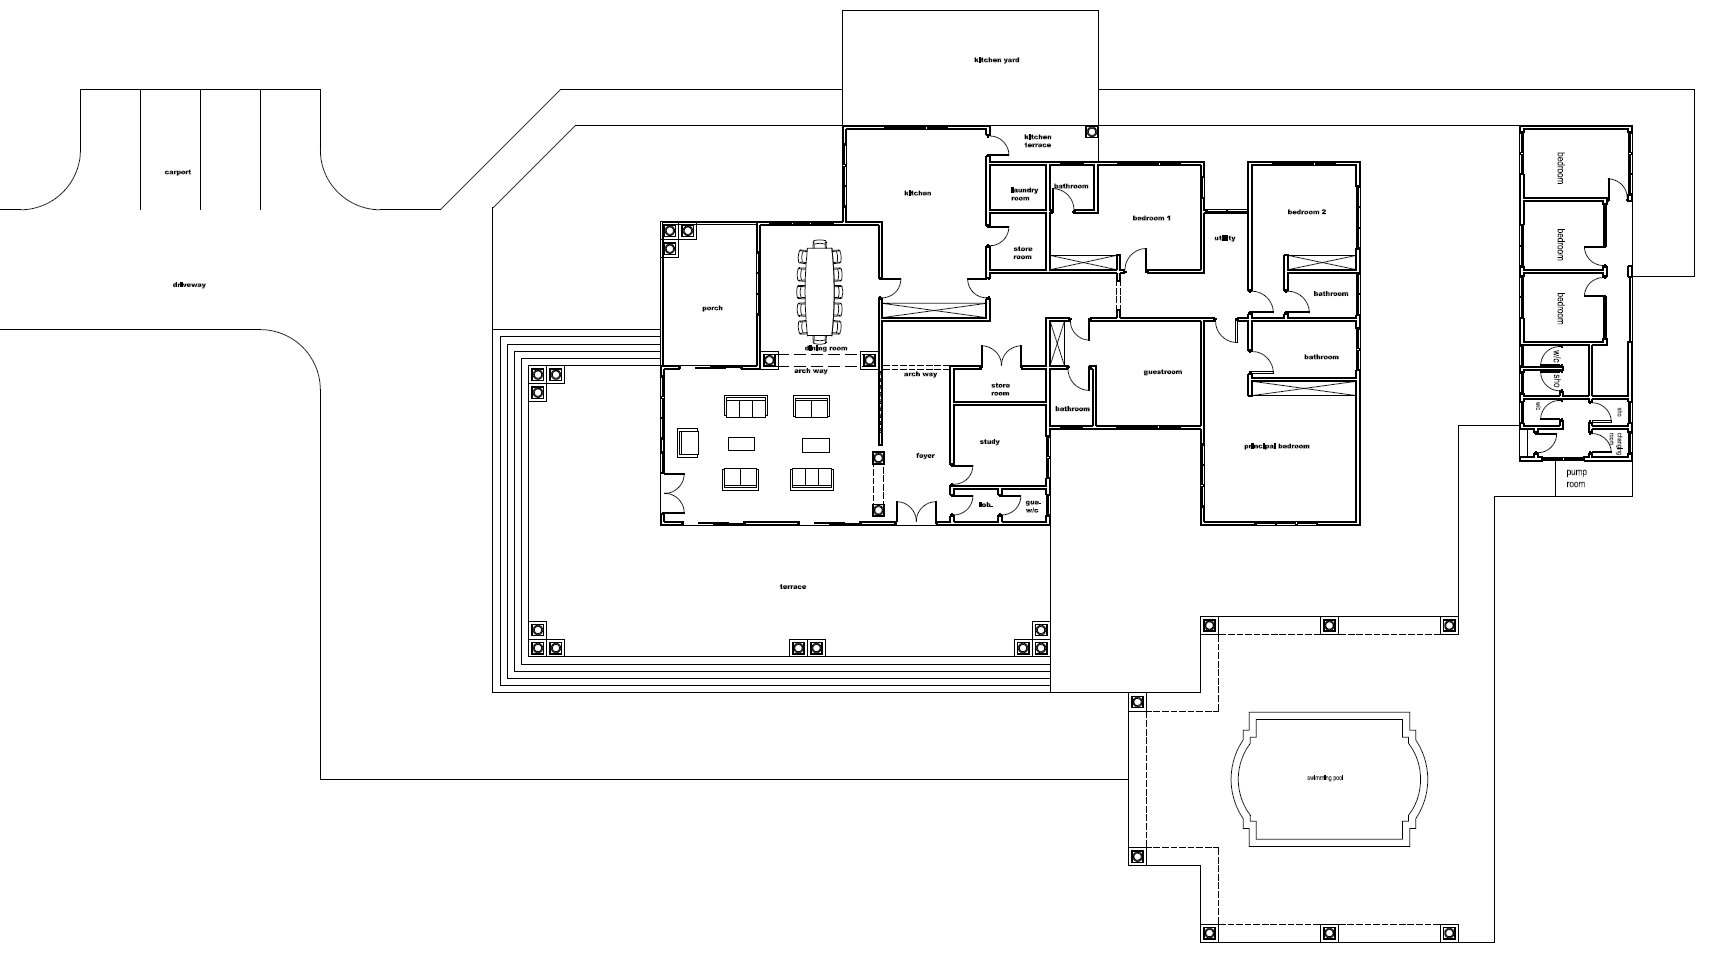 Nhyira House Plan together with Plan details also Plan details also Plano Casa  pacta Con Techo Dos Aguas likewise Plan details. on multi family home plans designs